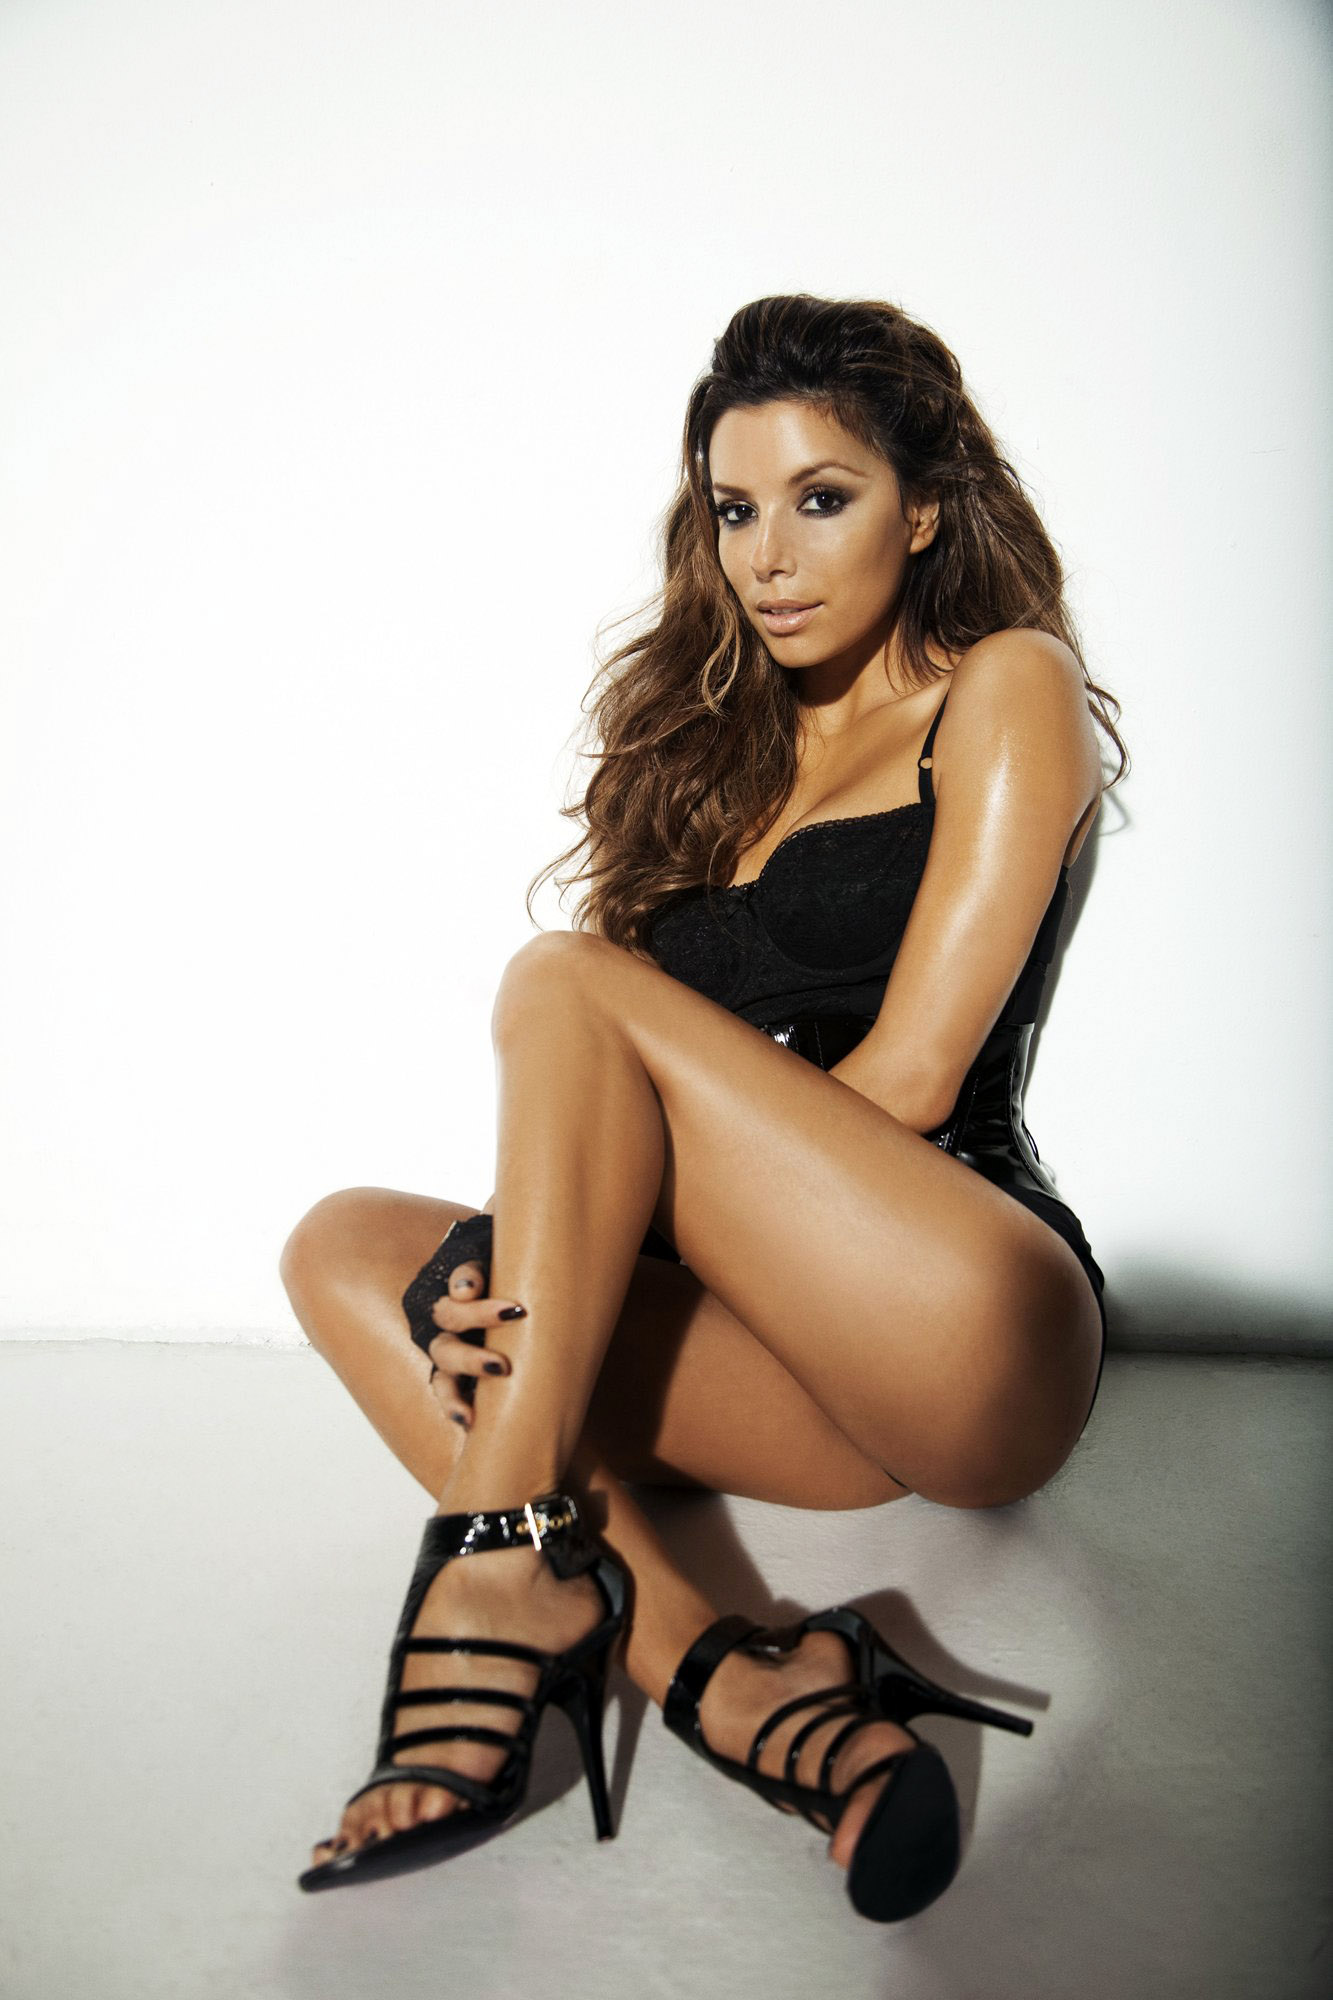 eva longoria hot 2014 profile pictures fb display picture